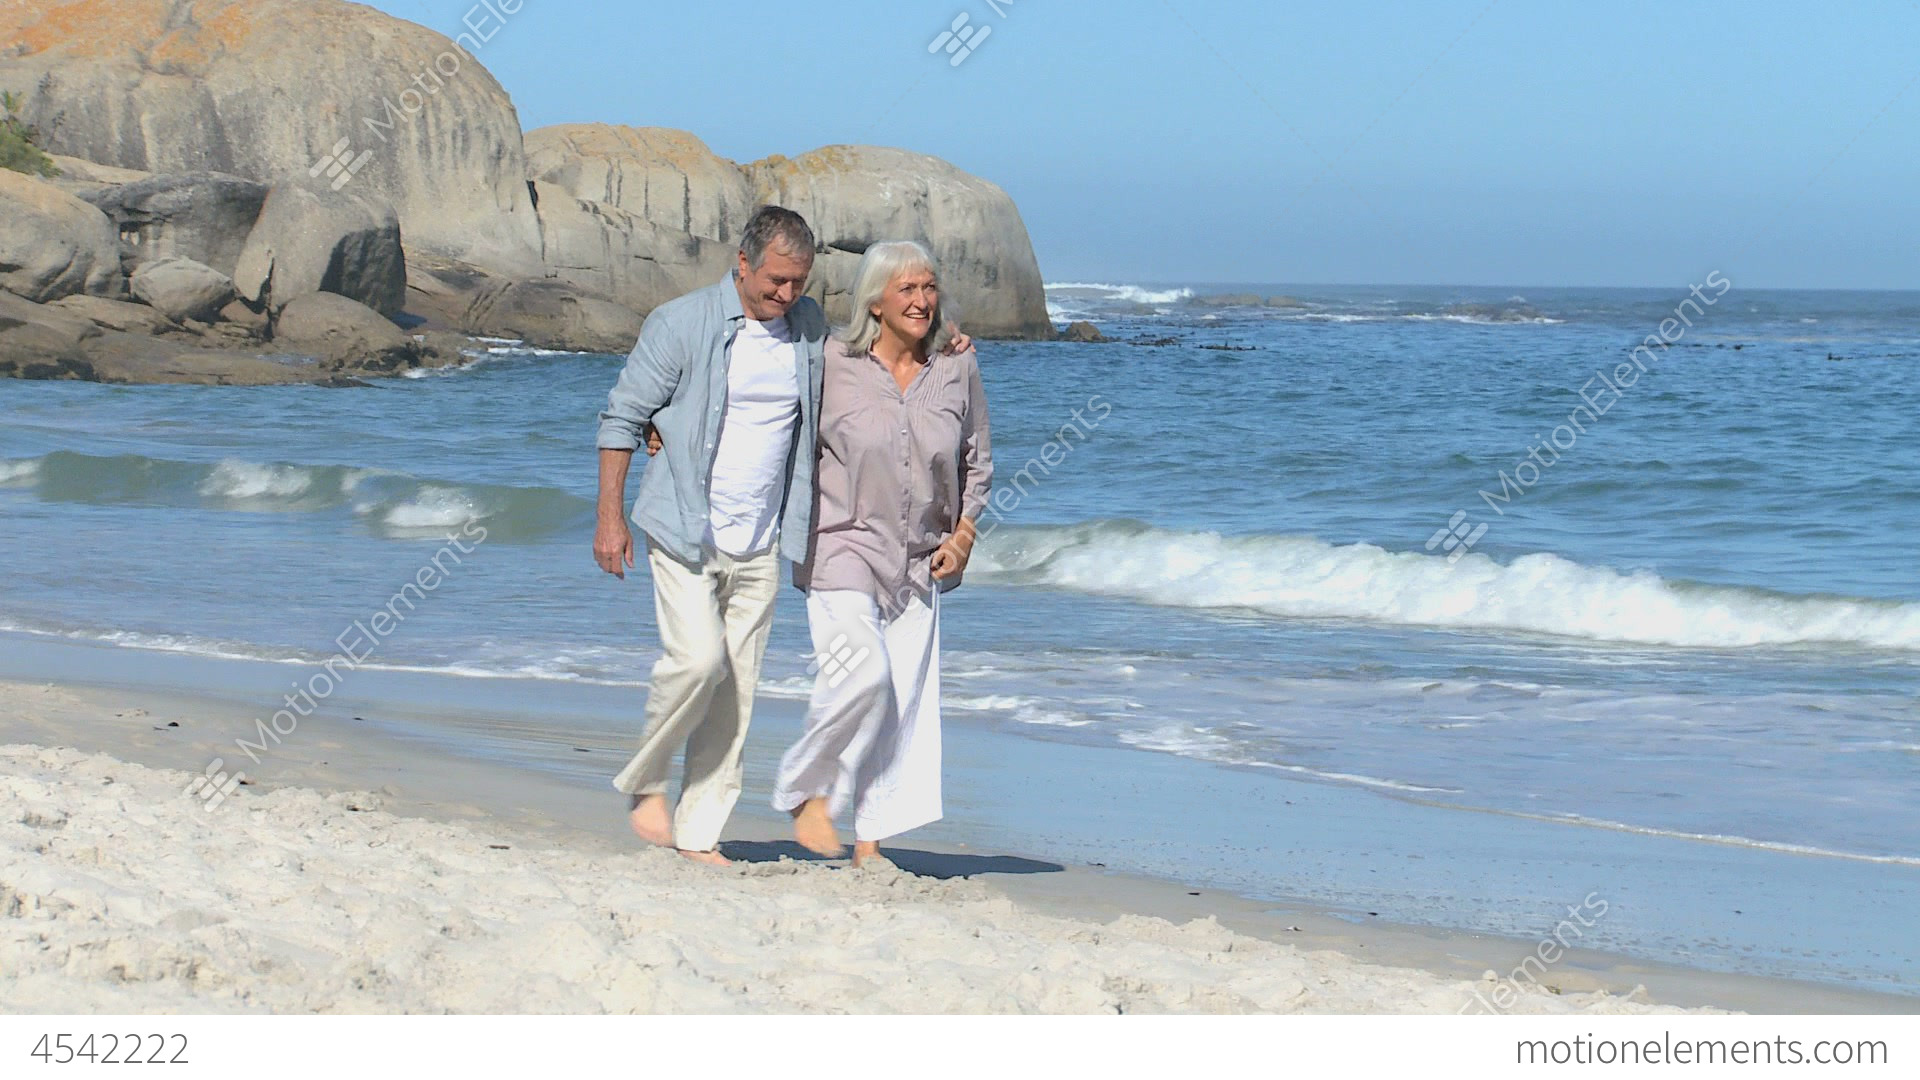 Progressive Near Me >> Elderly Couple Walking Along The Beach Stock video footage | 4542222